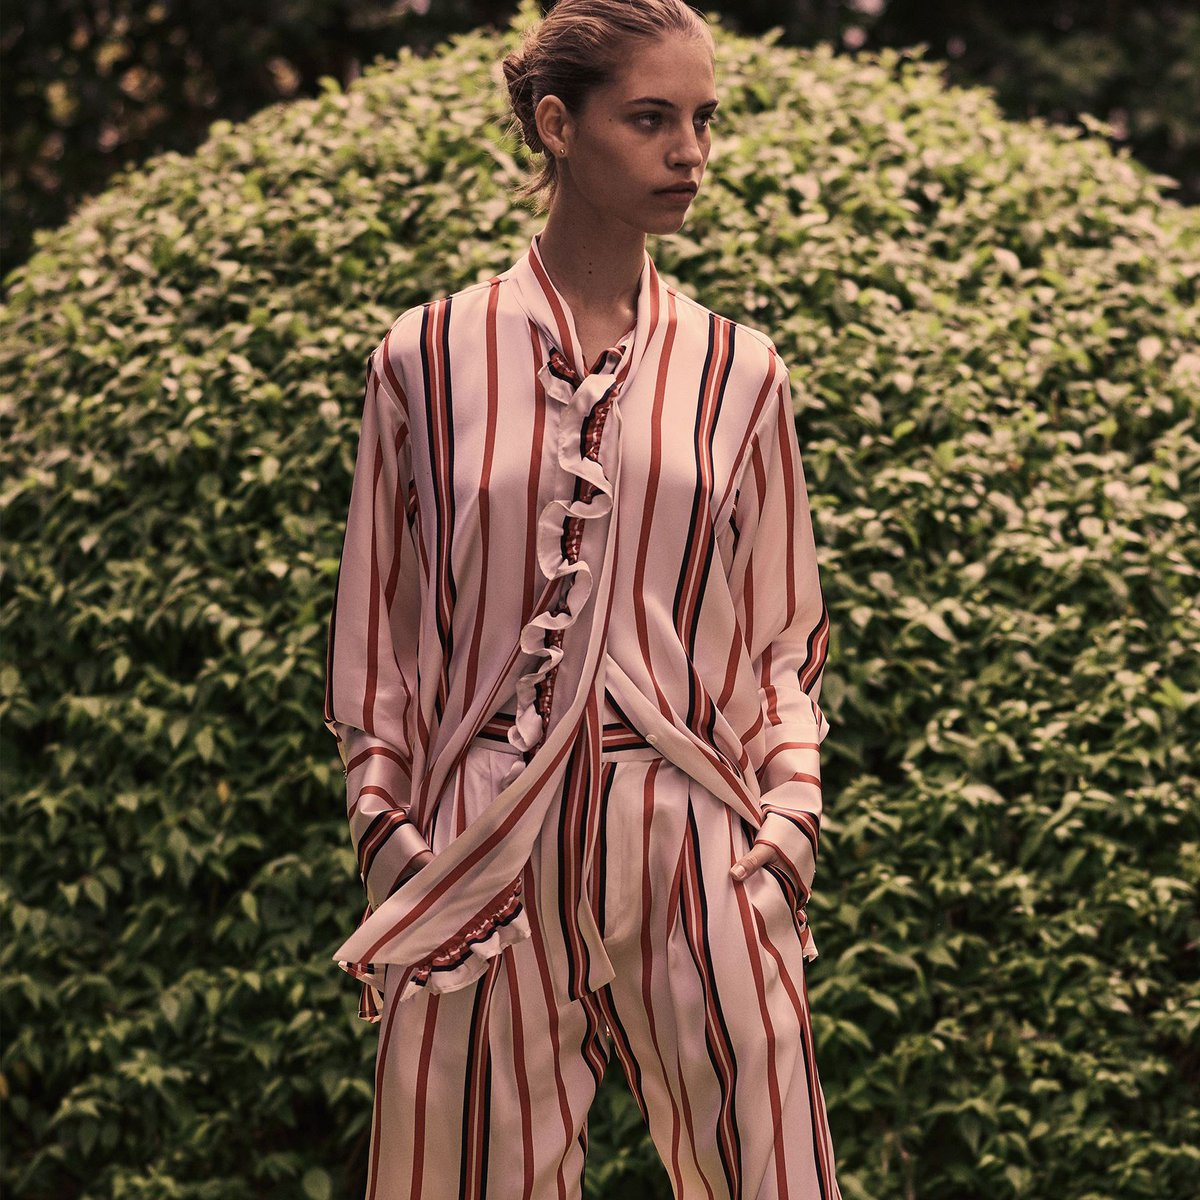 The pre-fall season is in, Maggie Marilyn is combining sport and finery #prefall18 #maggiemarilyn #fashion #prefall #collection #lookbook #ruffle #stripes #silk #shirt https://t.co/NbQBXjJpCu